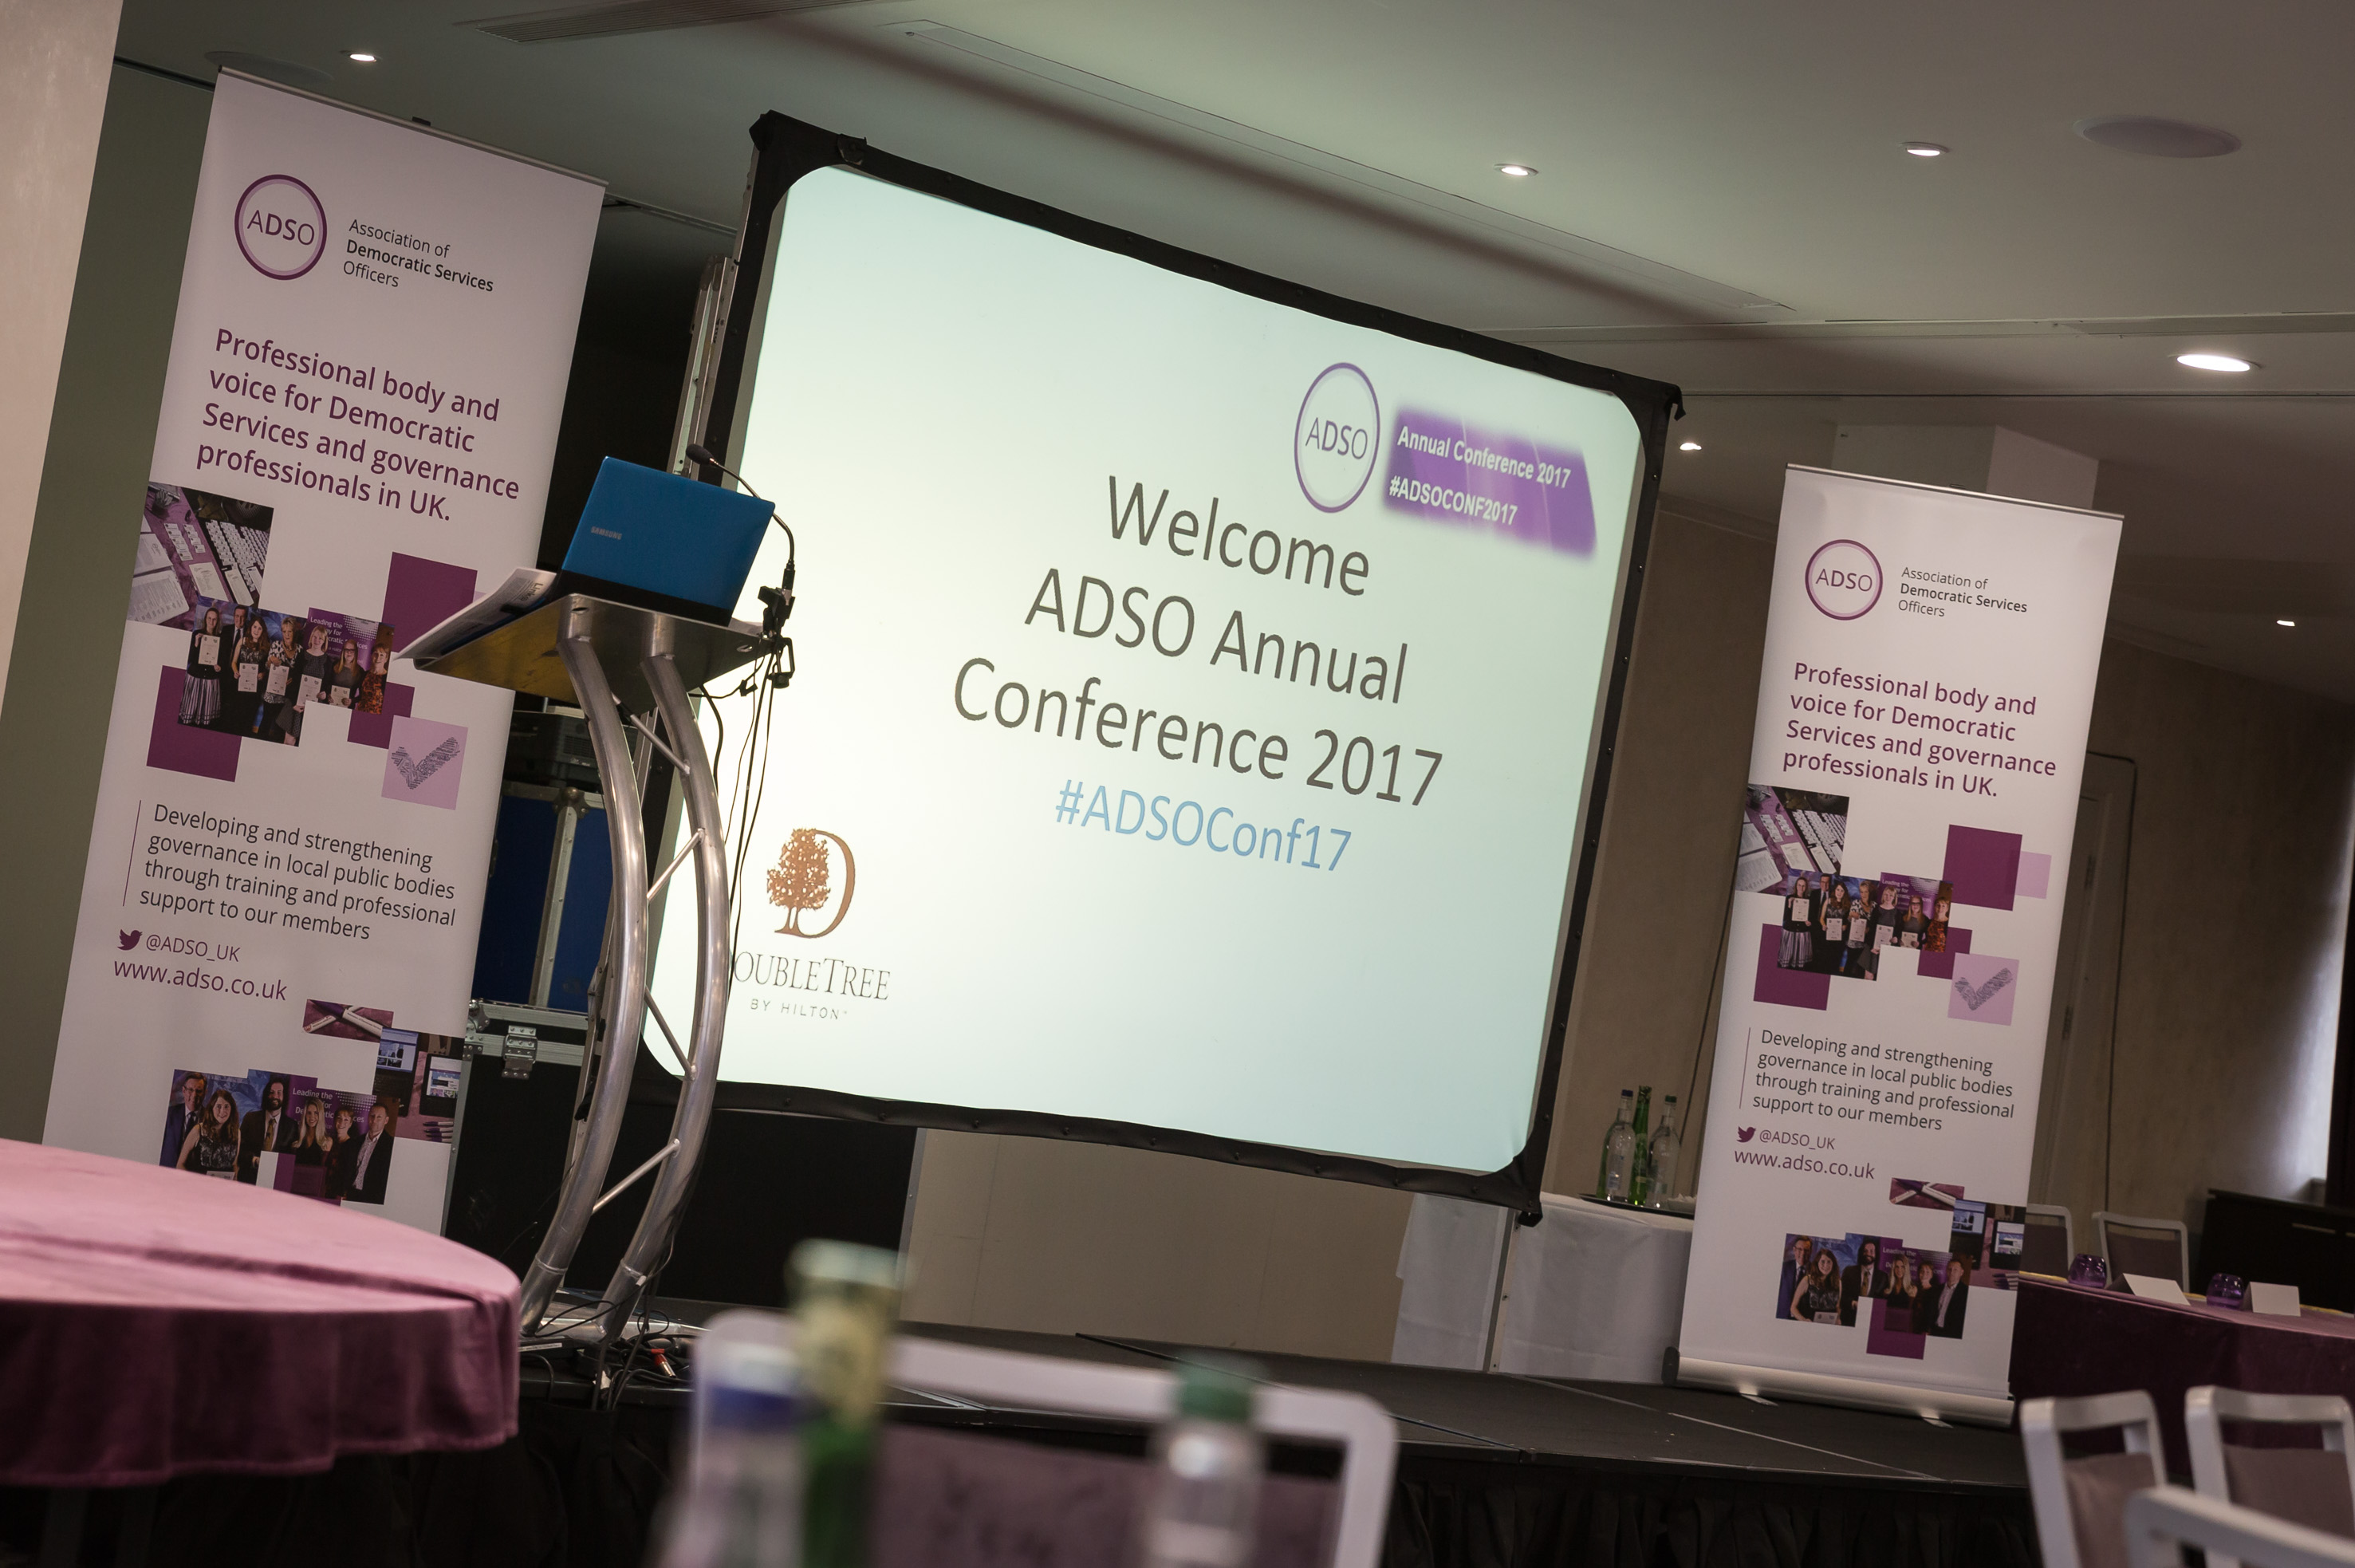 ADSO annual conference 2017 in pictures